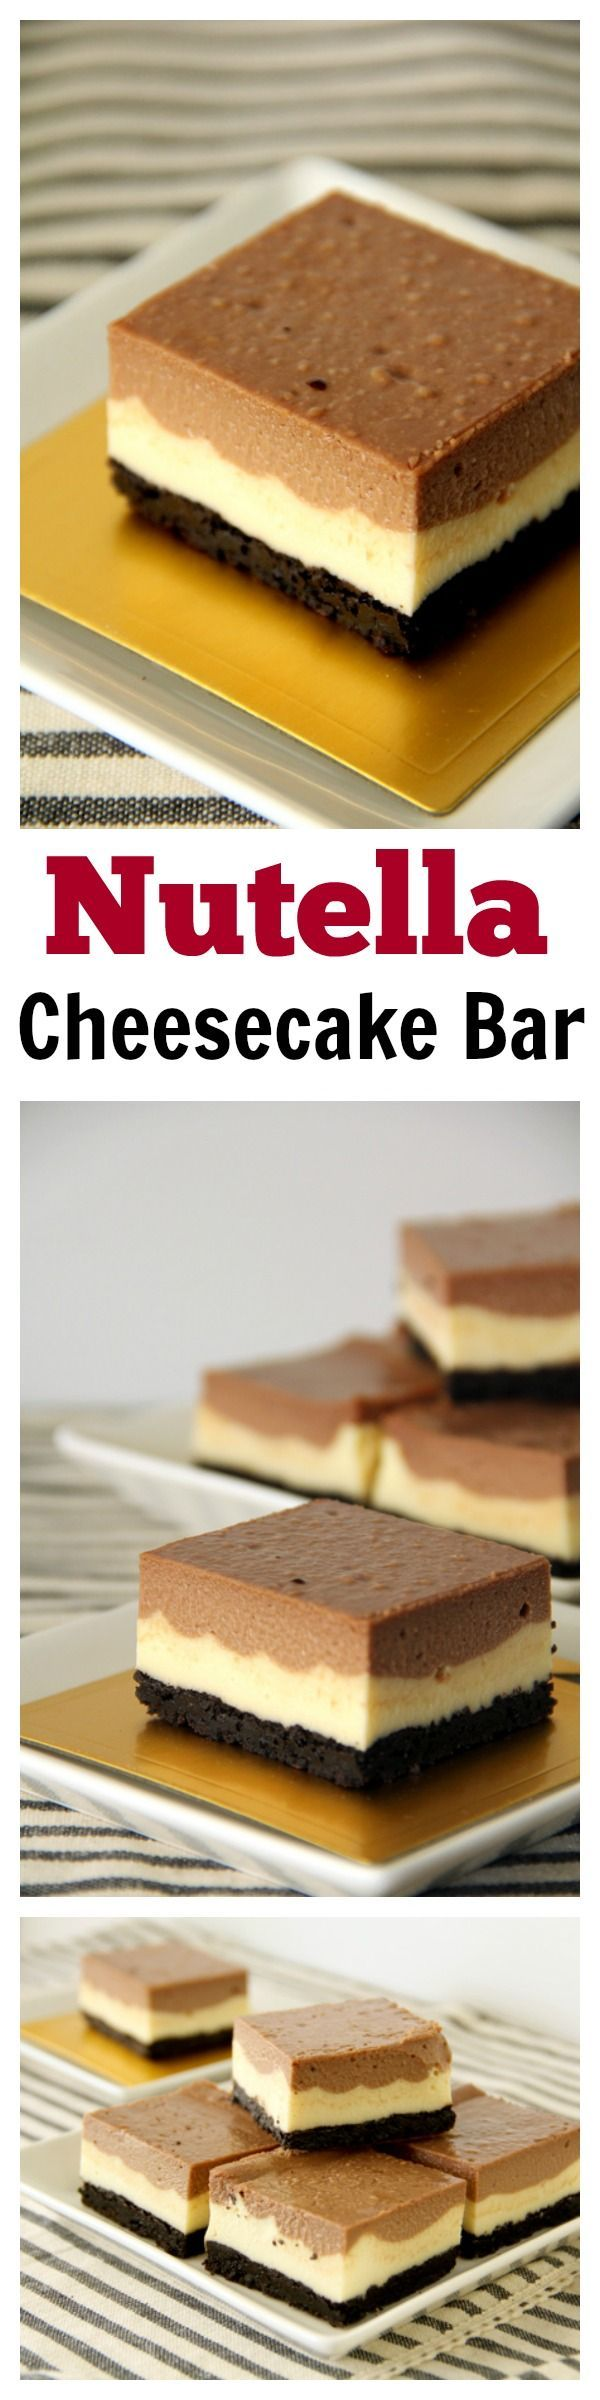 Nutella Cheesecake Bars with Oreo Base - Crazy decadent and rich cheesecake bar loaded with Nutella, must-try recipe   rasamalaysia.com